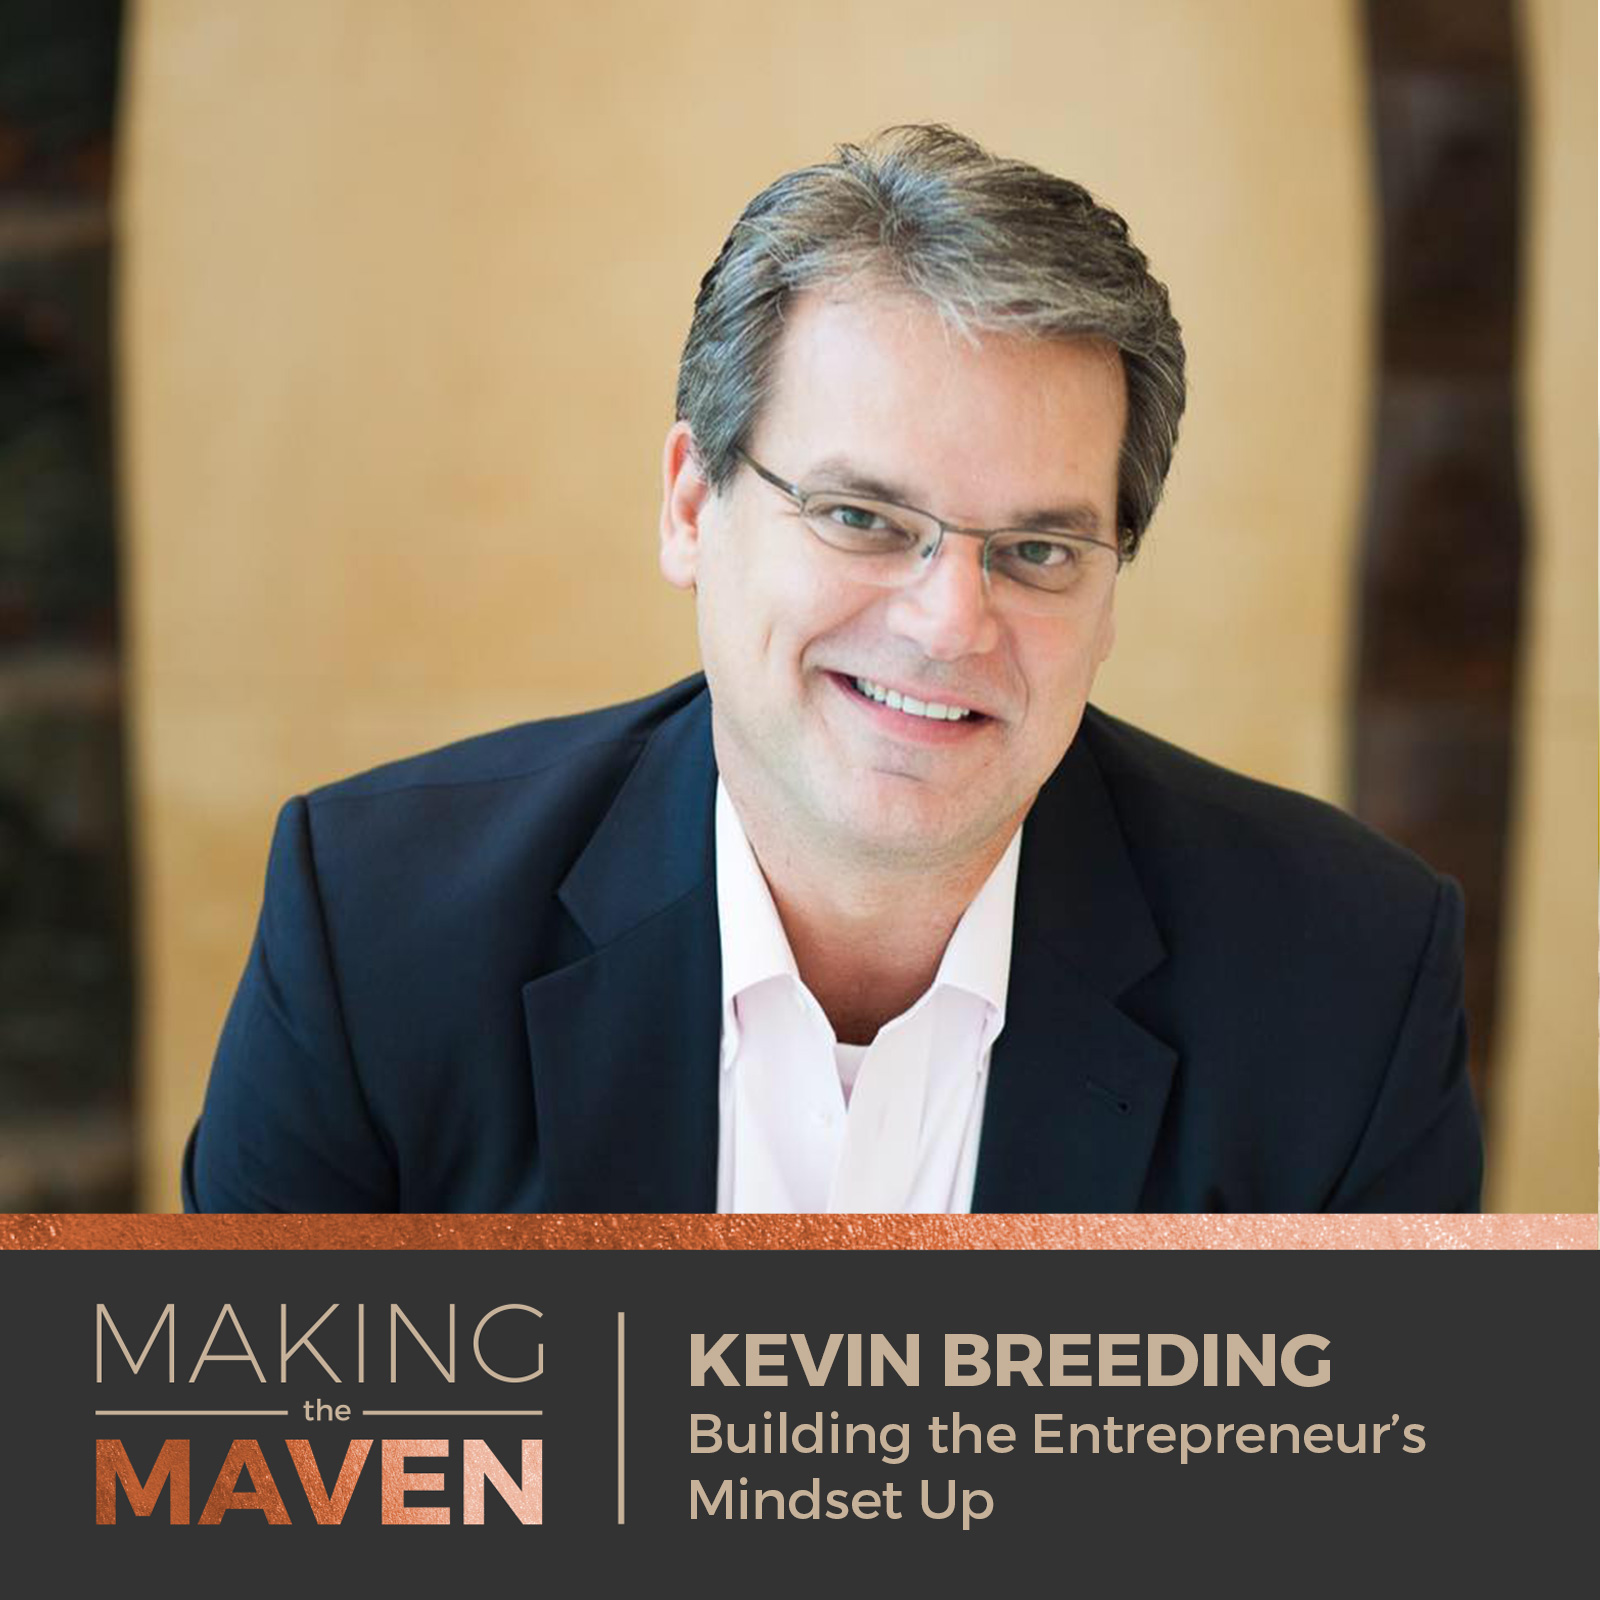 Kevin Breeding